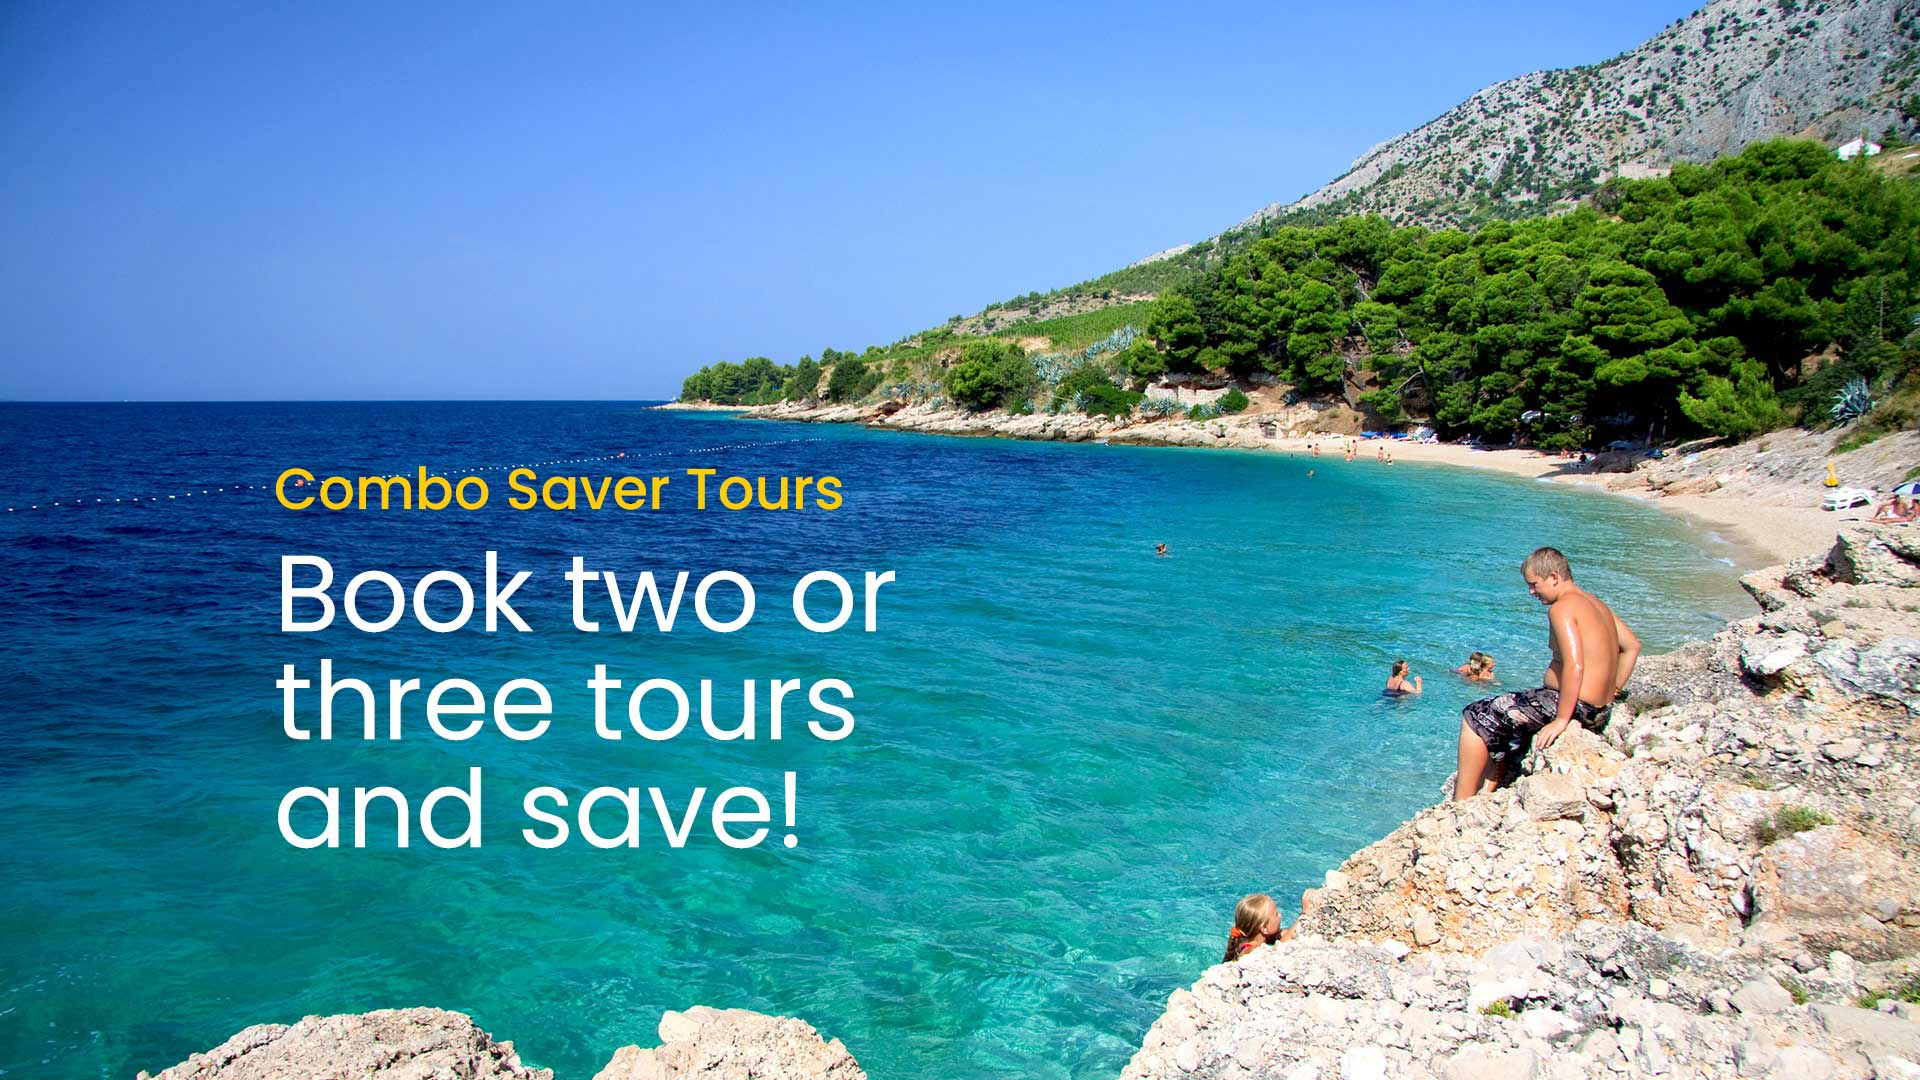 combo saver tours, tour packages from Split